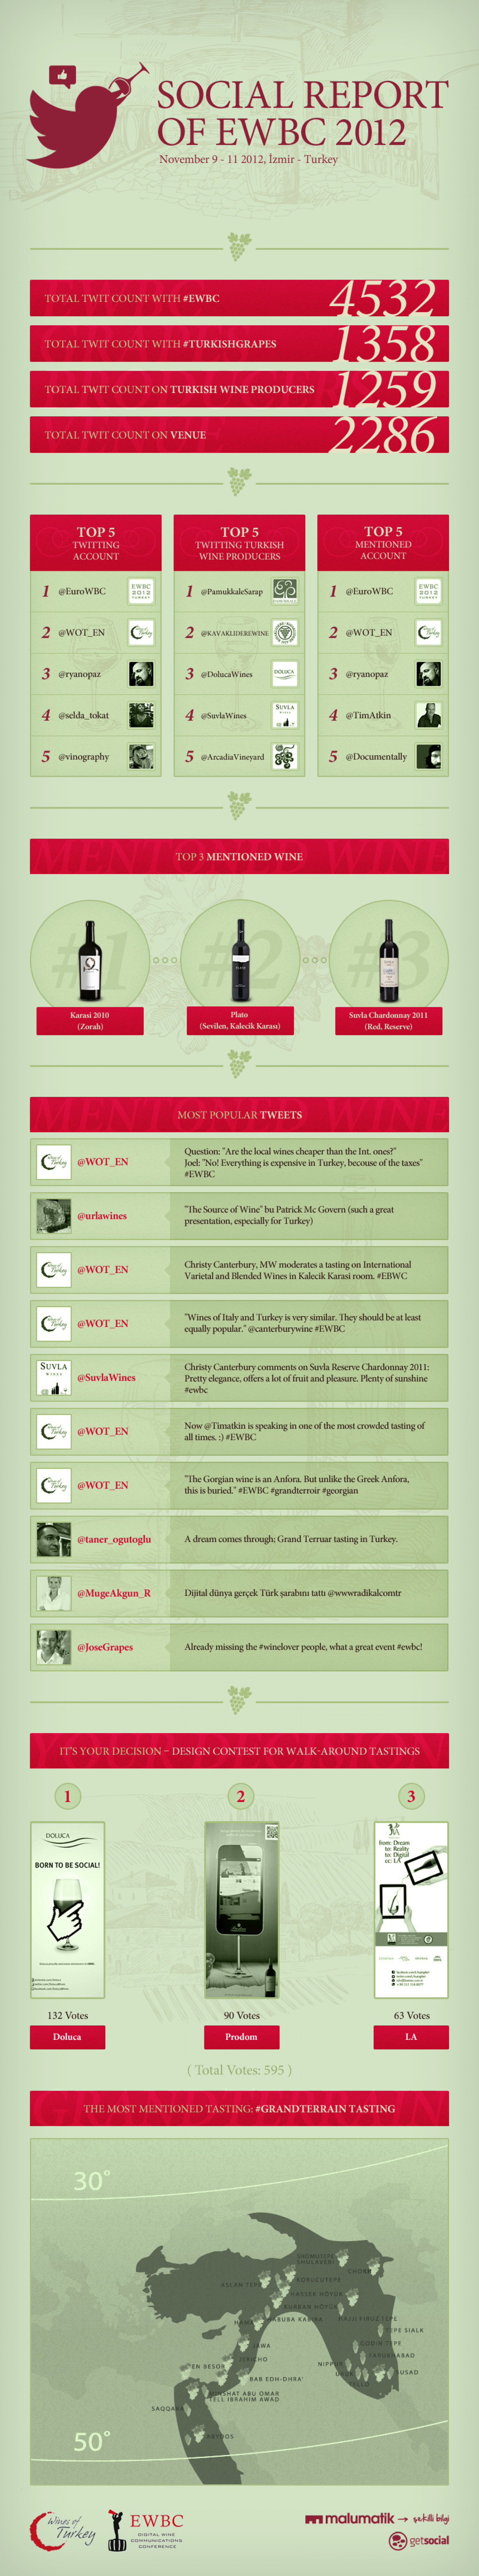 Social Report of EWBC 2012 Infographic